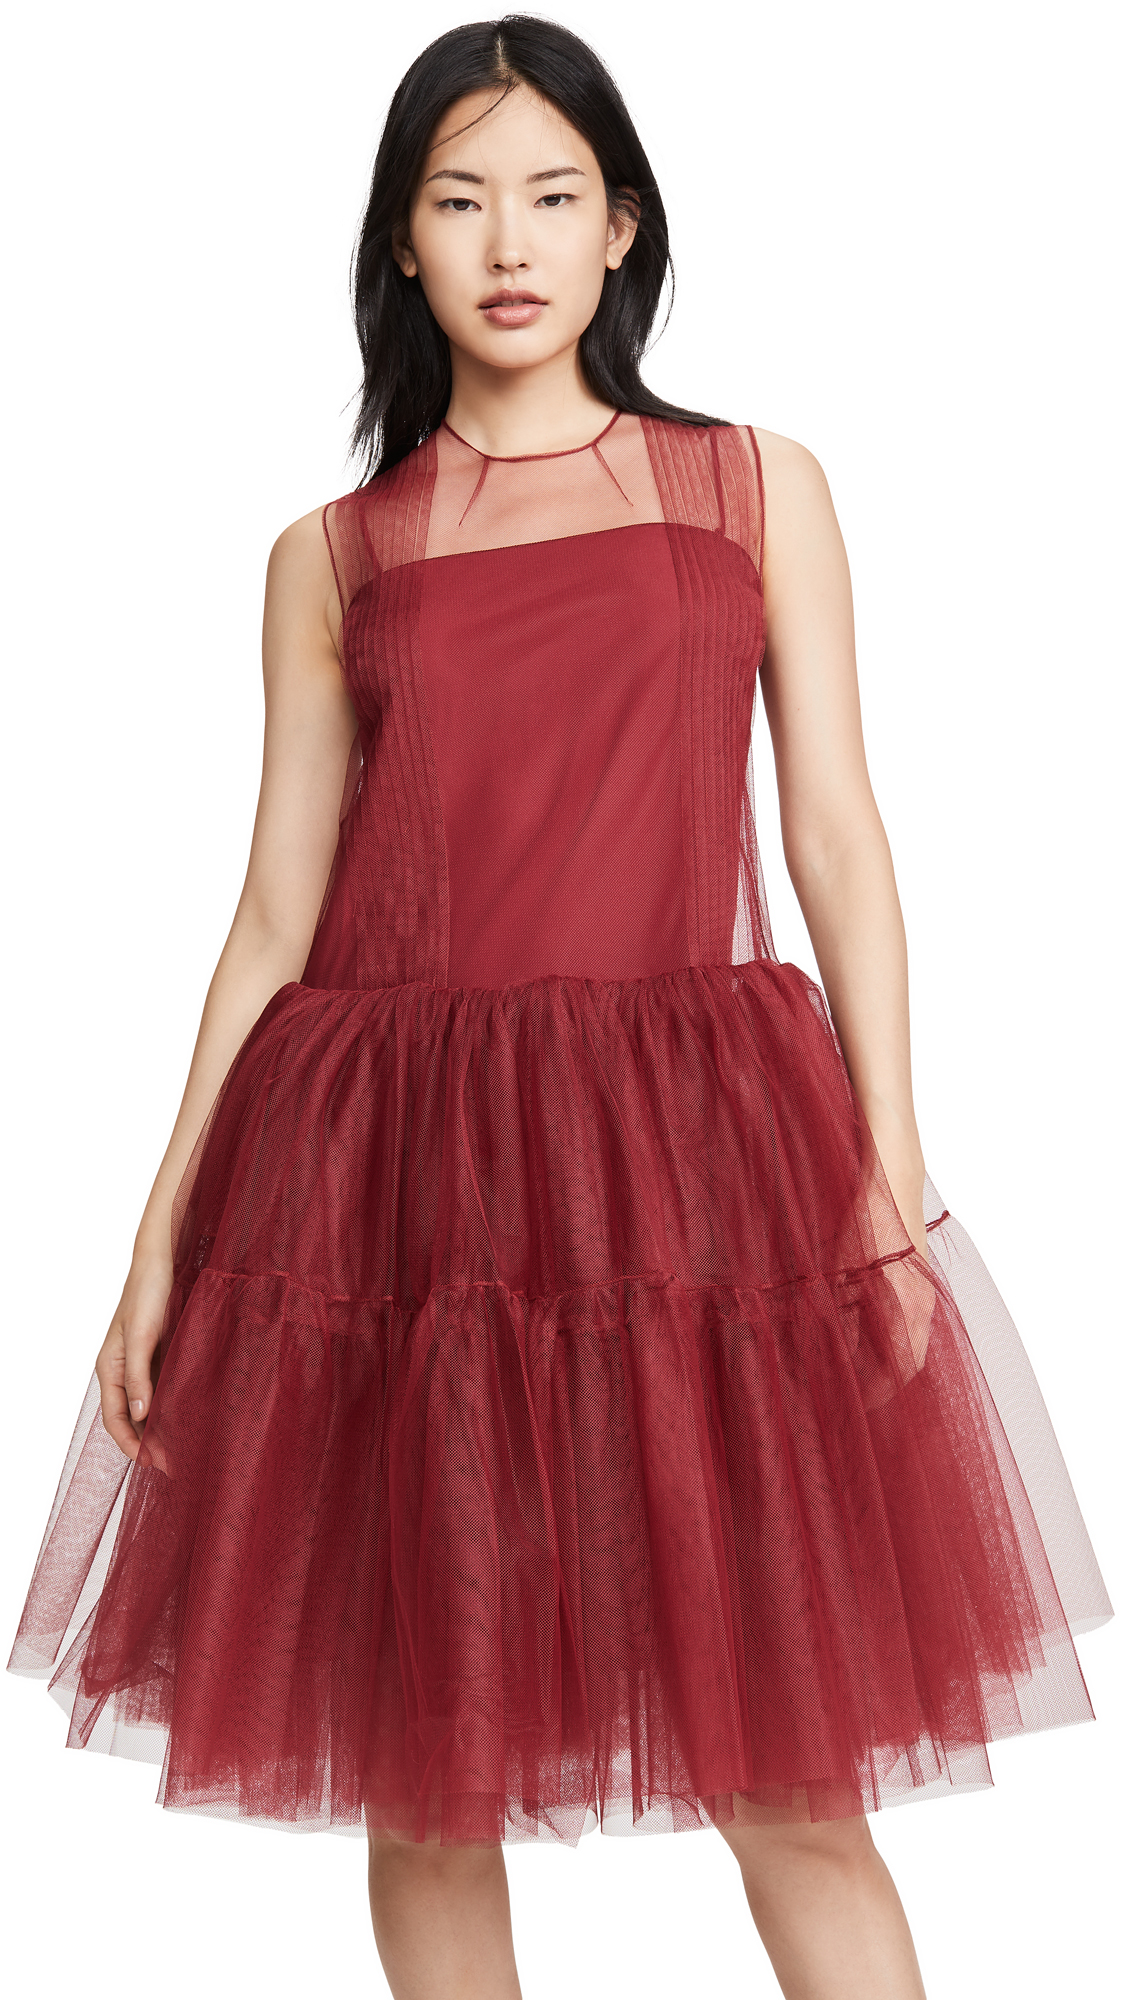 No. 21 Sleeveless Tulle Mini Dress – 40% Off Sale